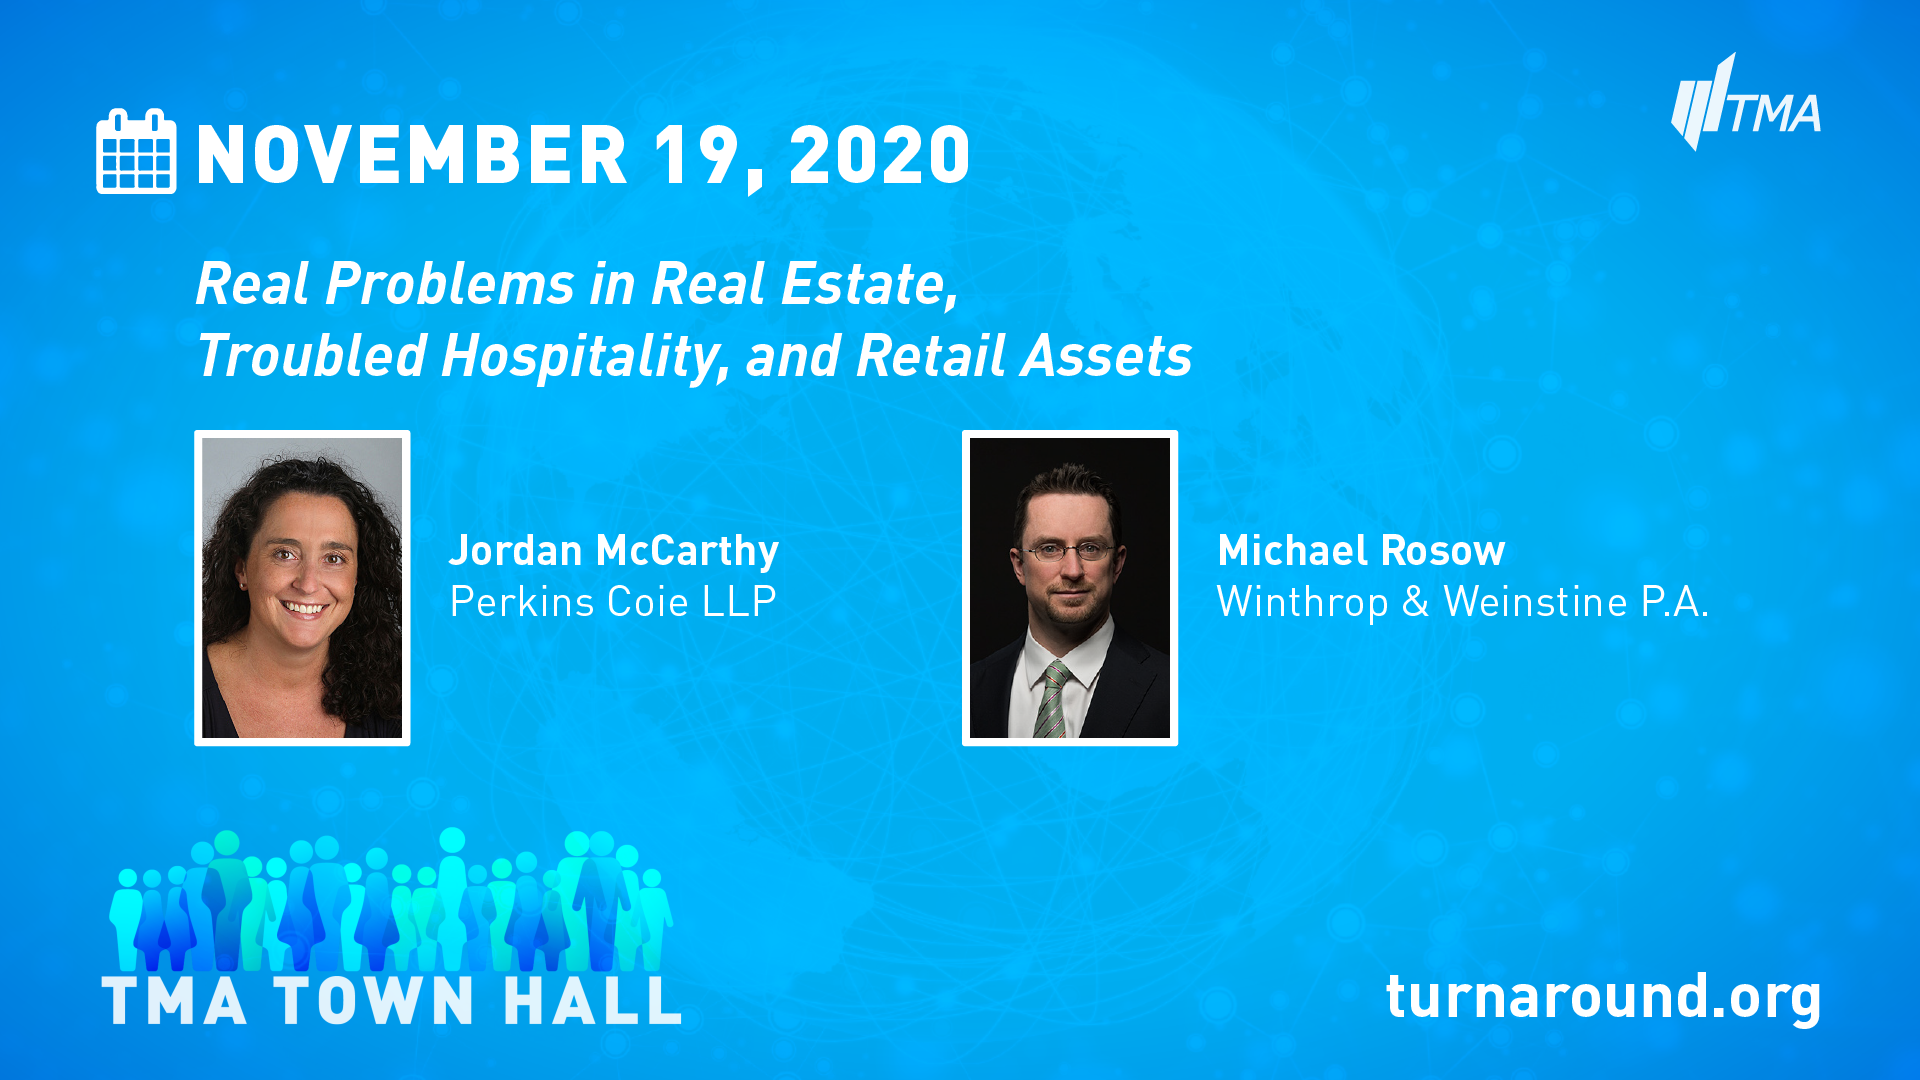 TMA Town Hall for November 19, 2020